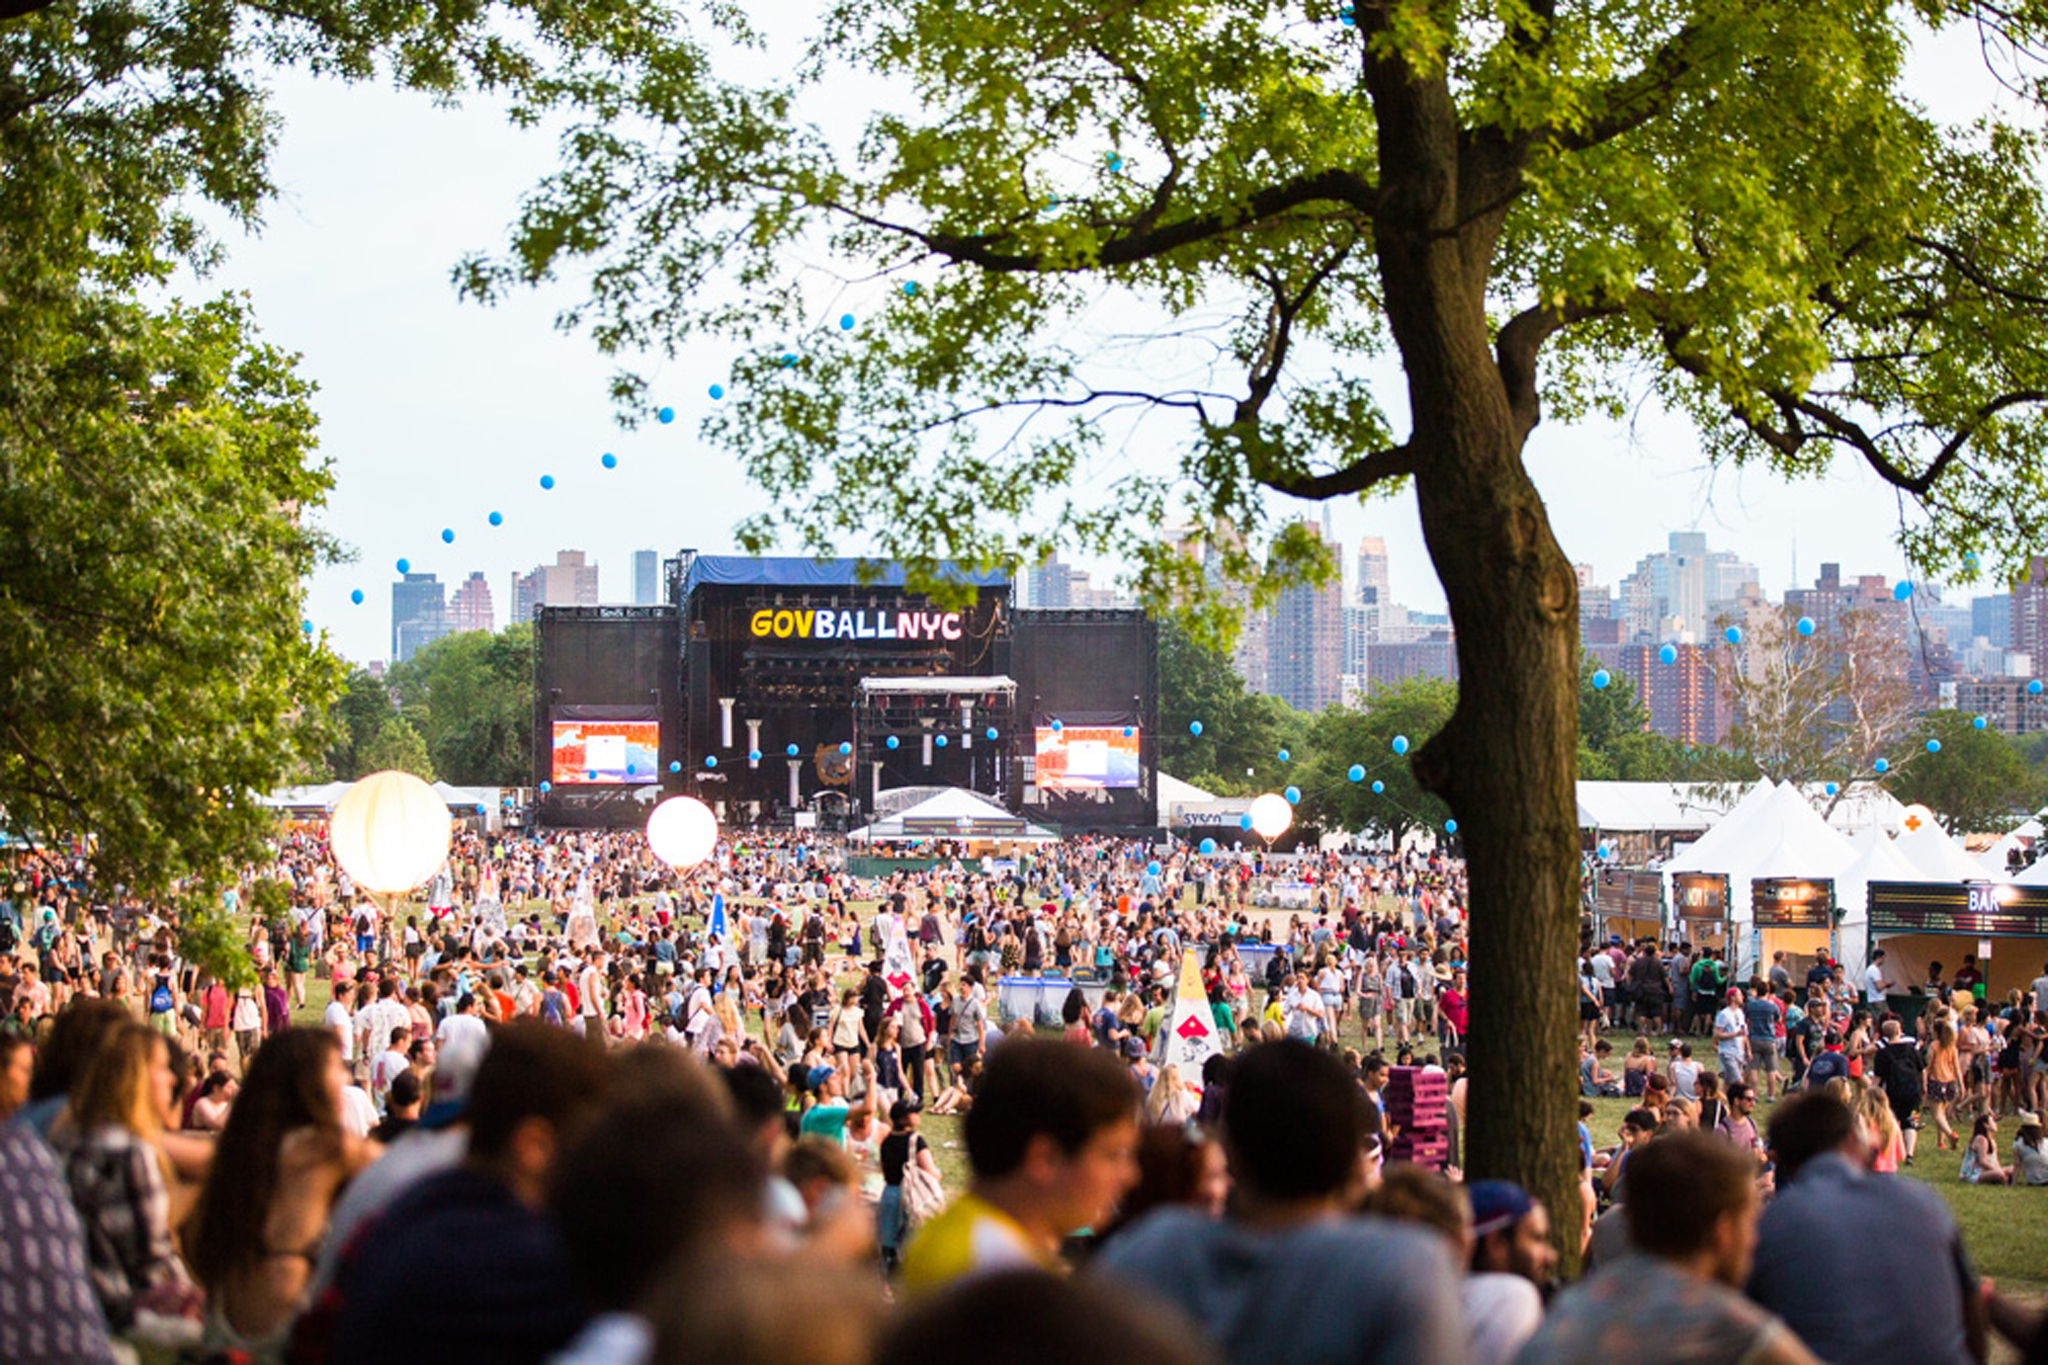 Exclusive: Here's the site map for Governors Ball 2015